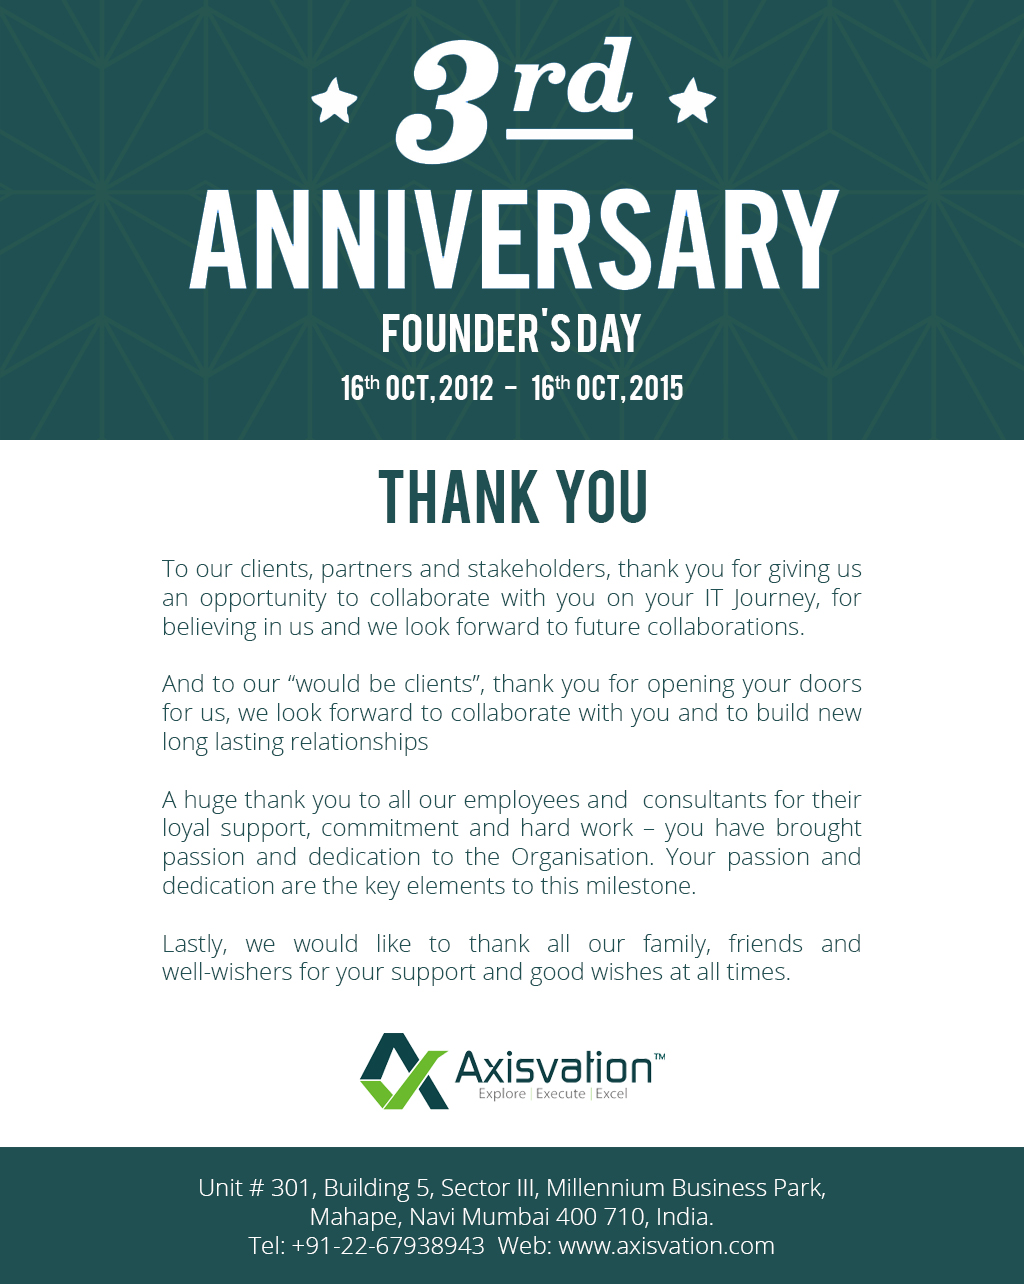 Axisvation as the Startup of the year 2014